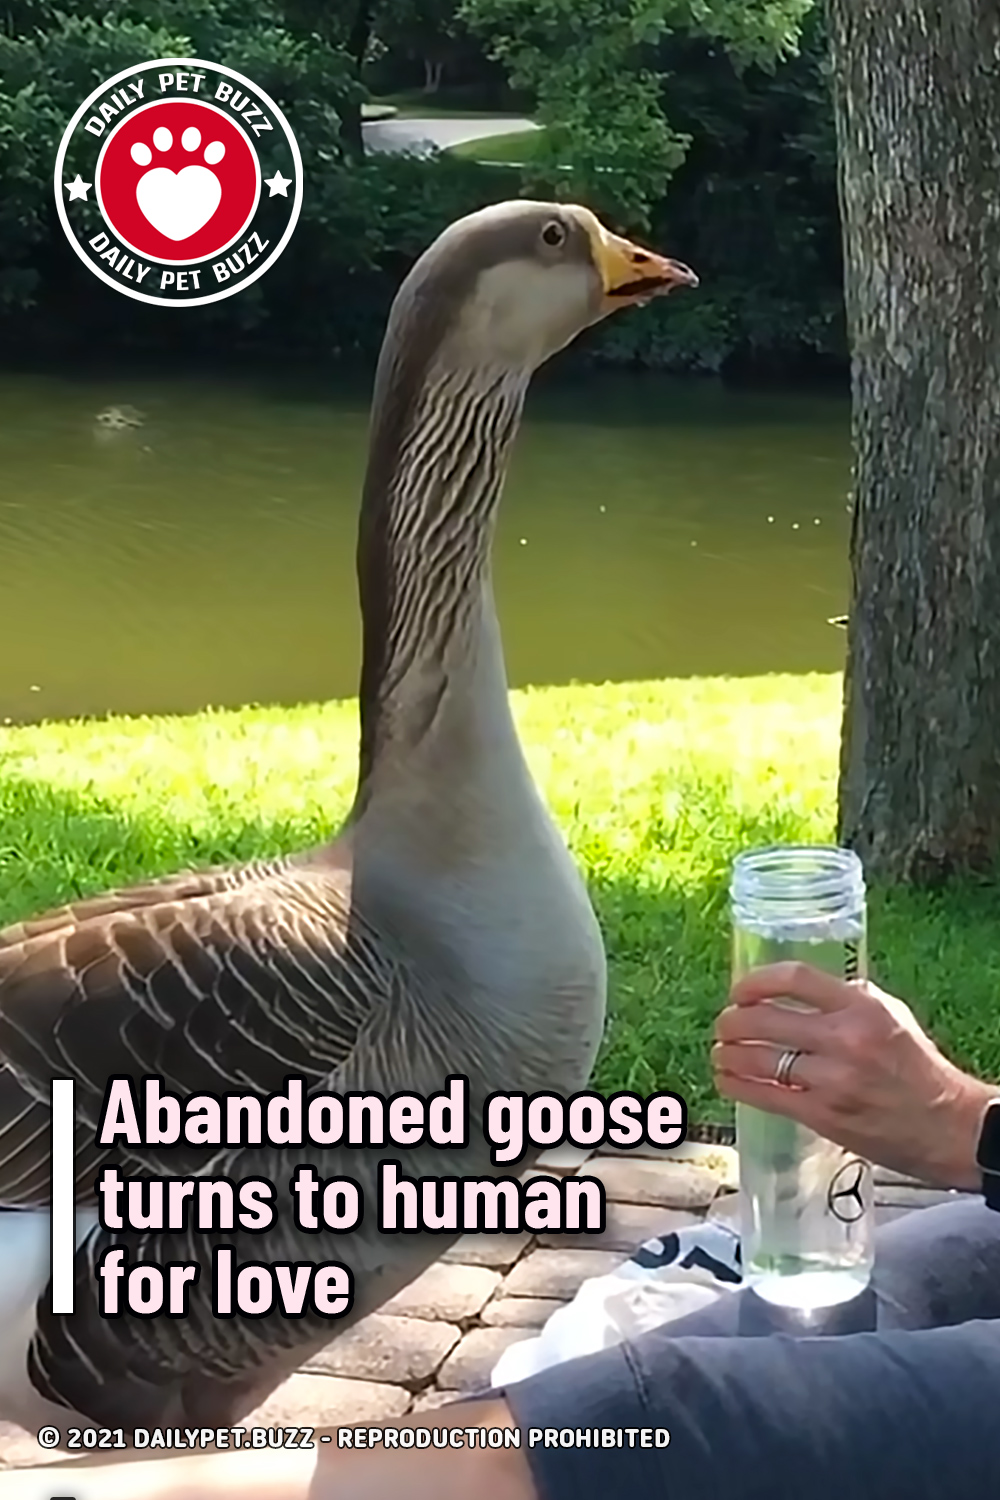 Abandoned goose turns to human for love